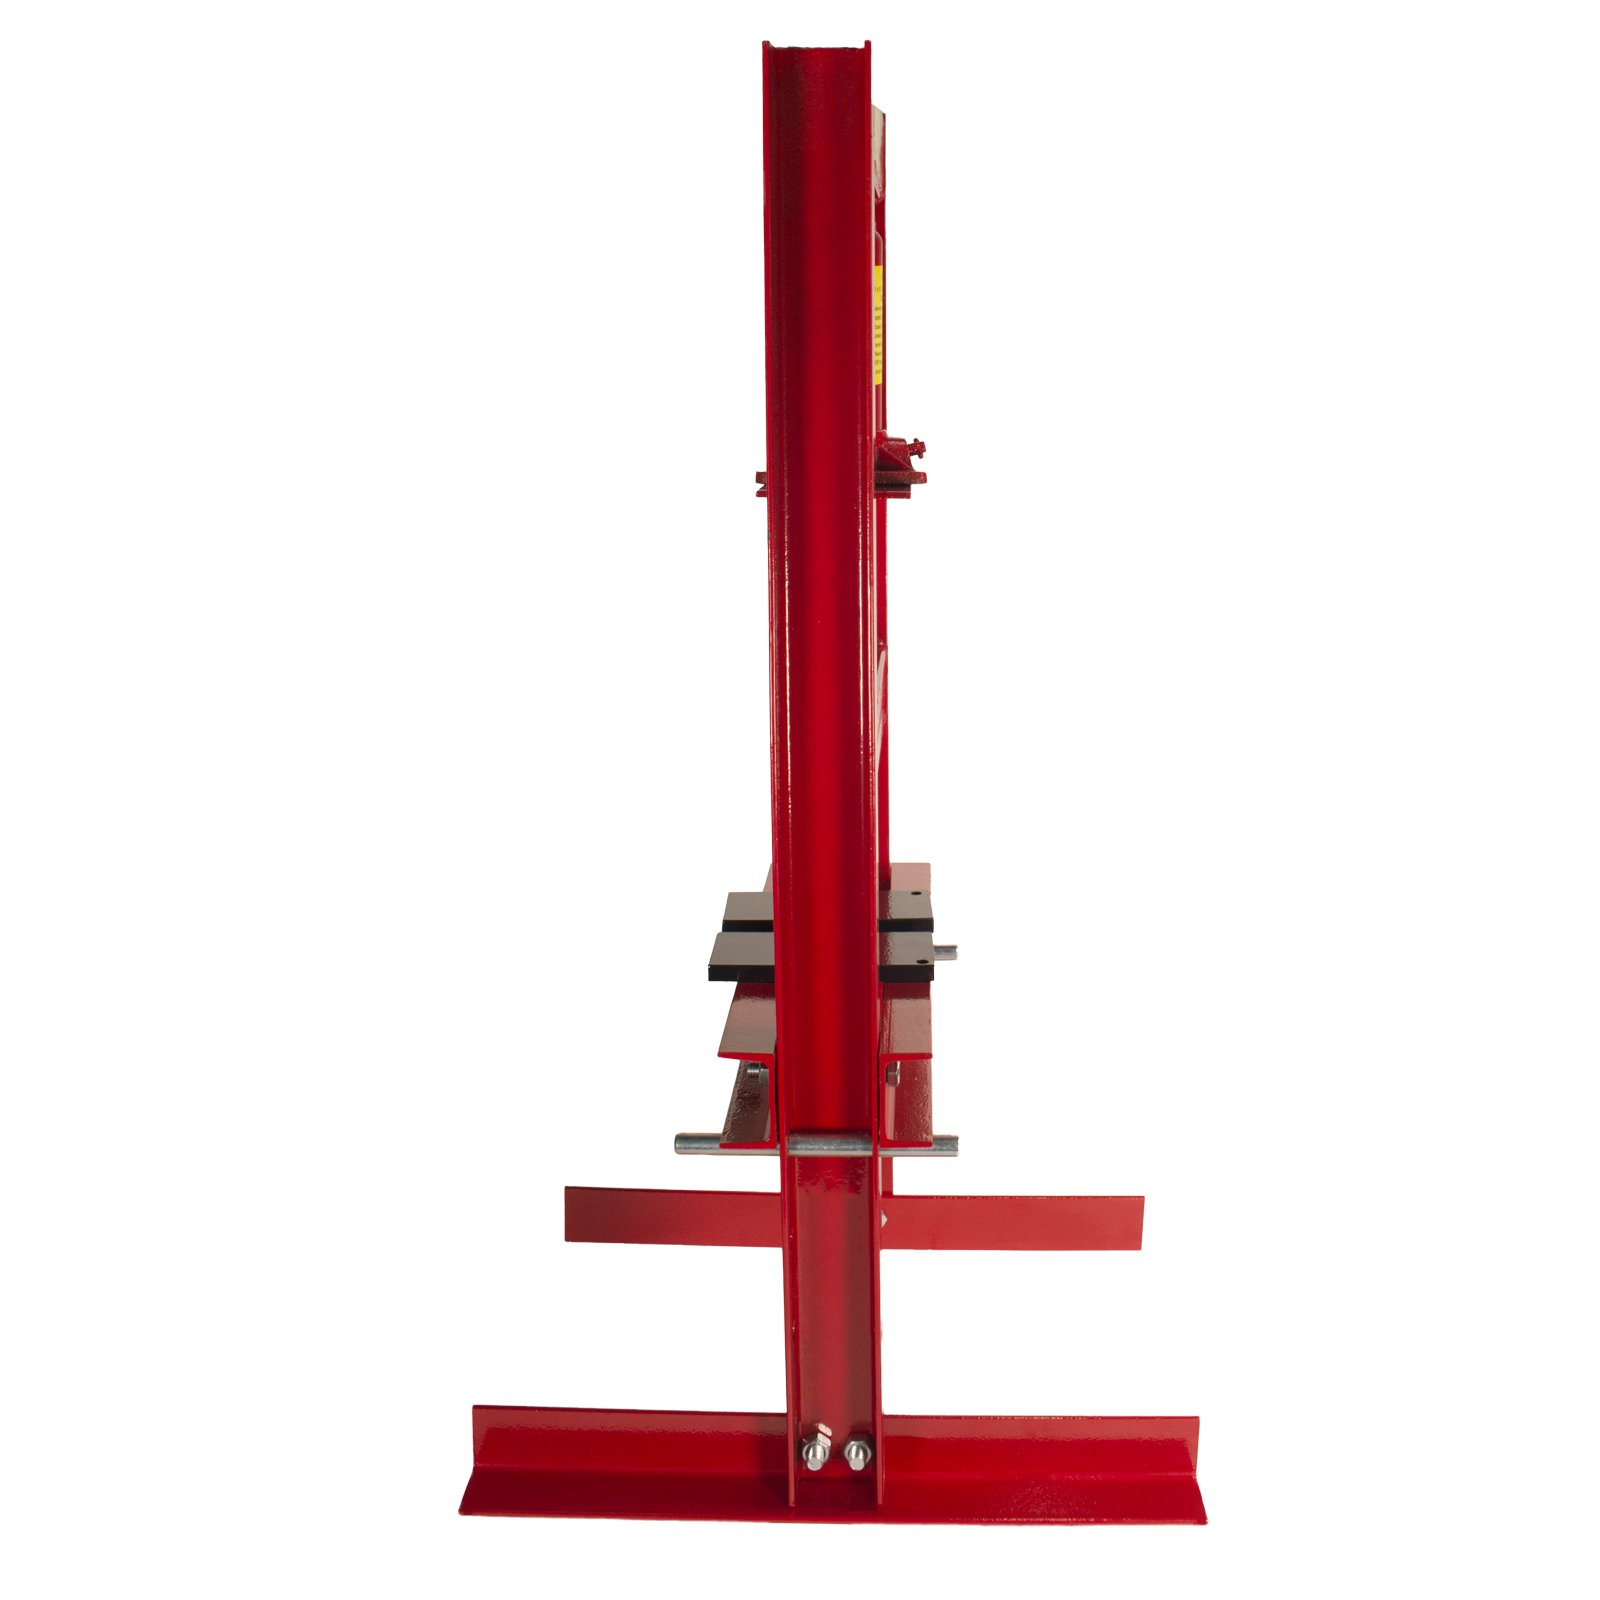 Dragway Tools 6-Ton Hydraulic Shop Floor Press with Press Plates and H Frame is Ideal for Gears and Bearings by Dragway Tools (Image #7)